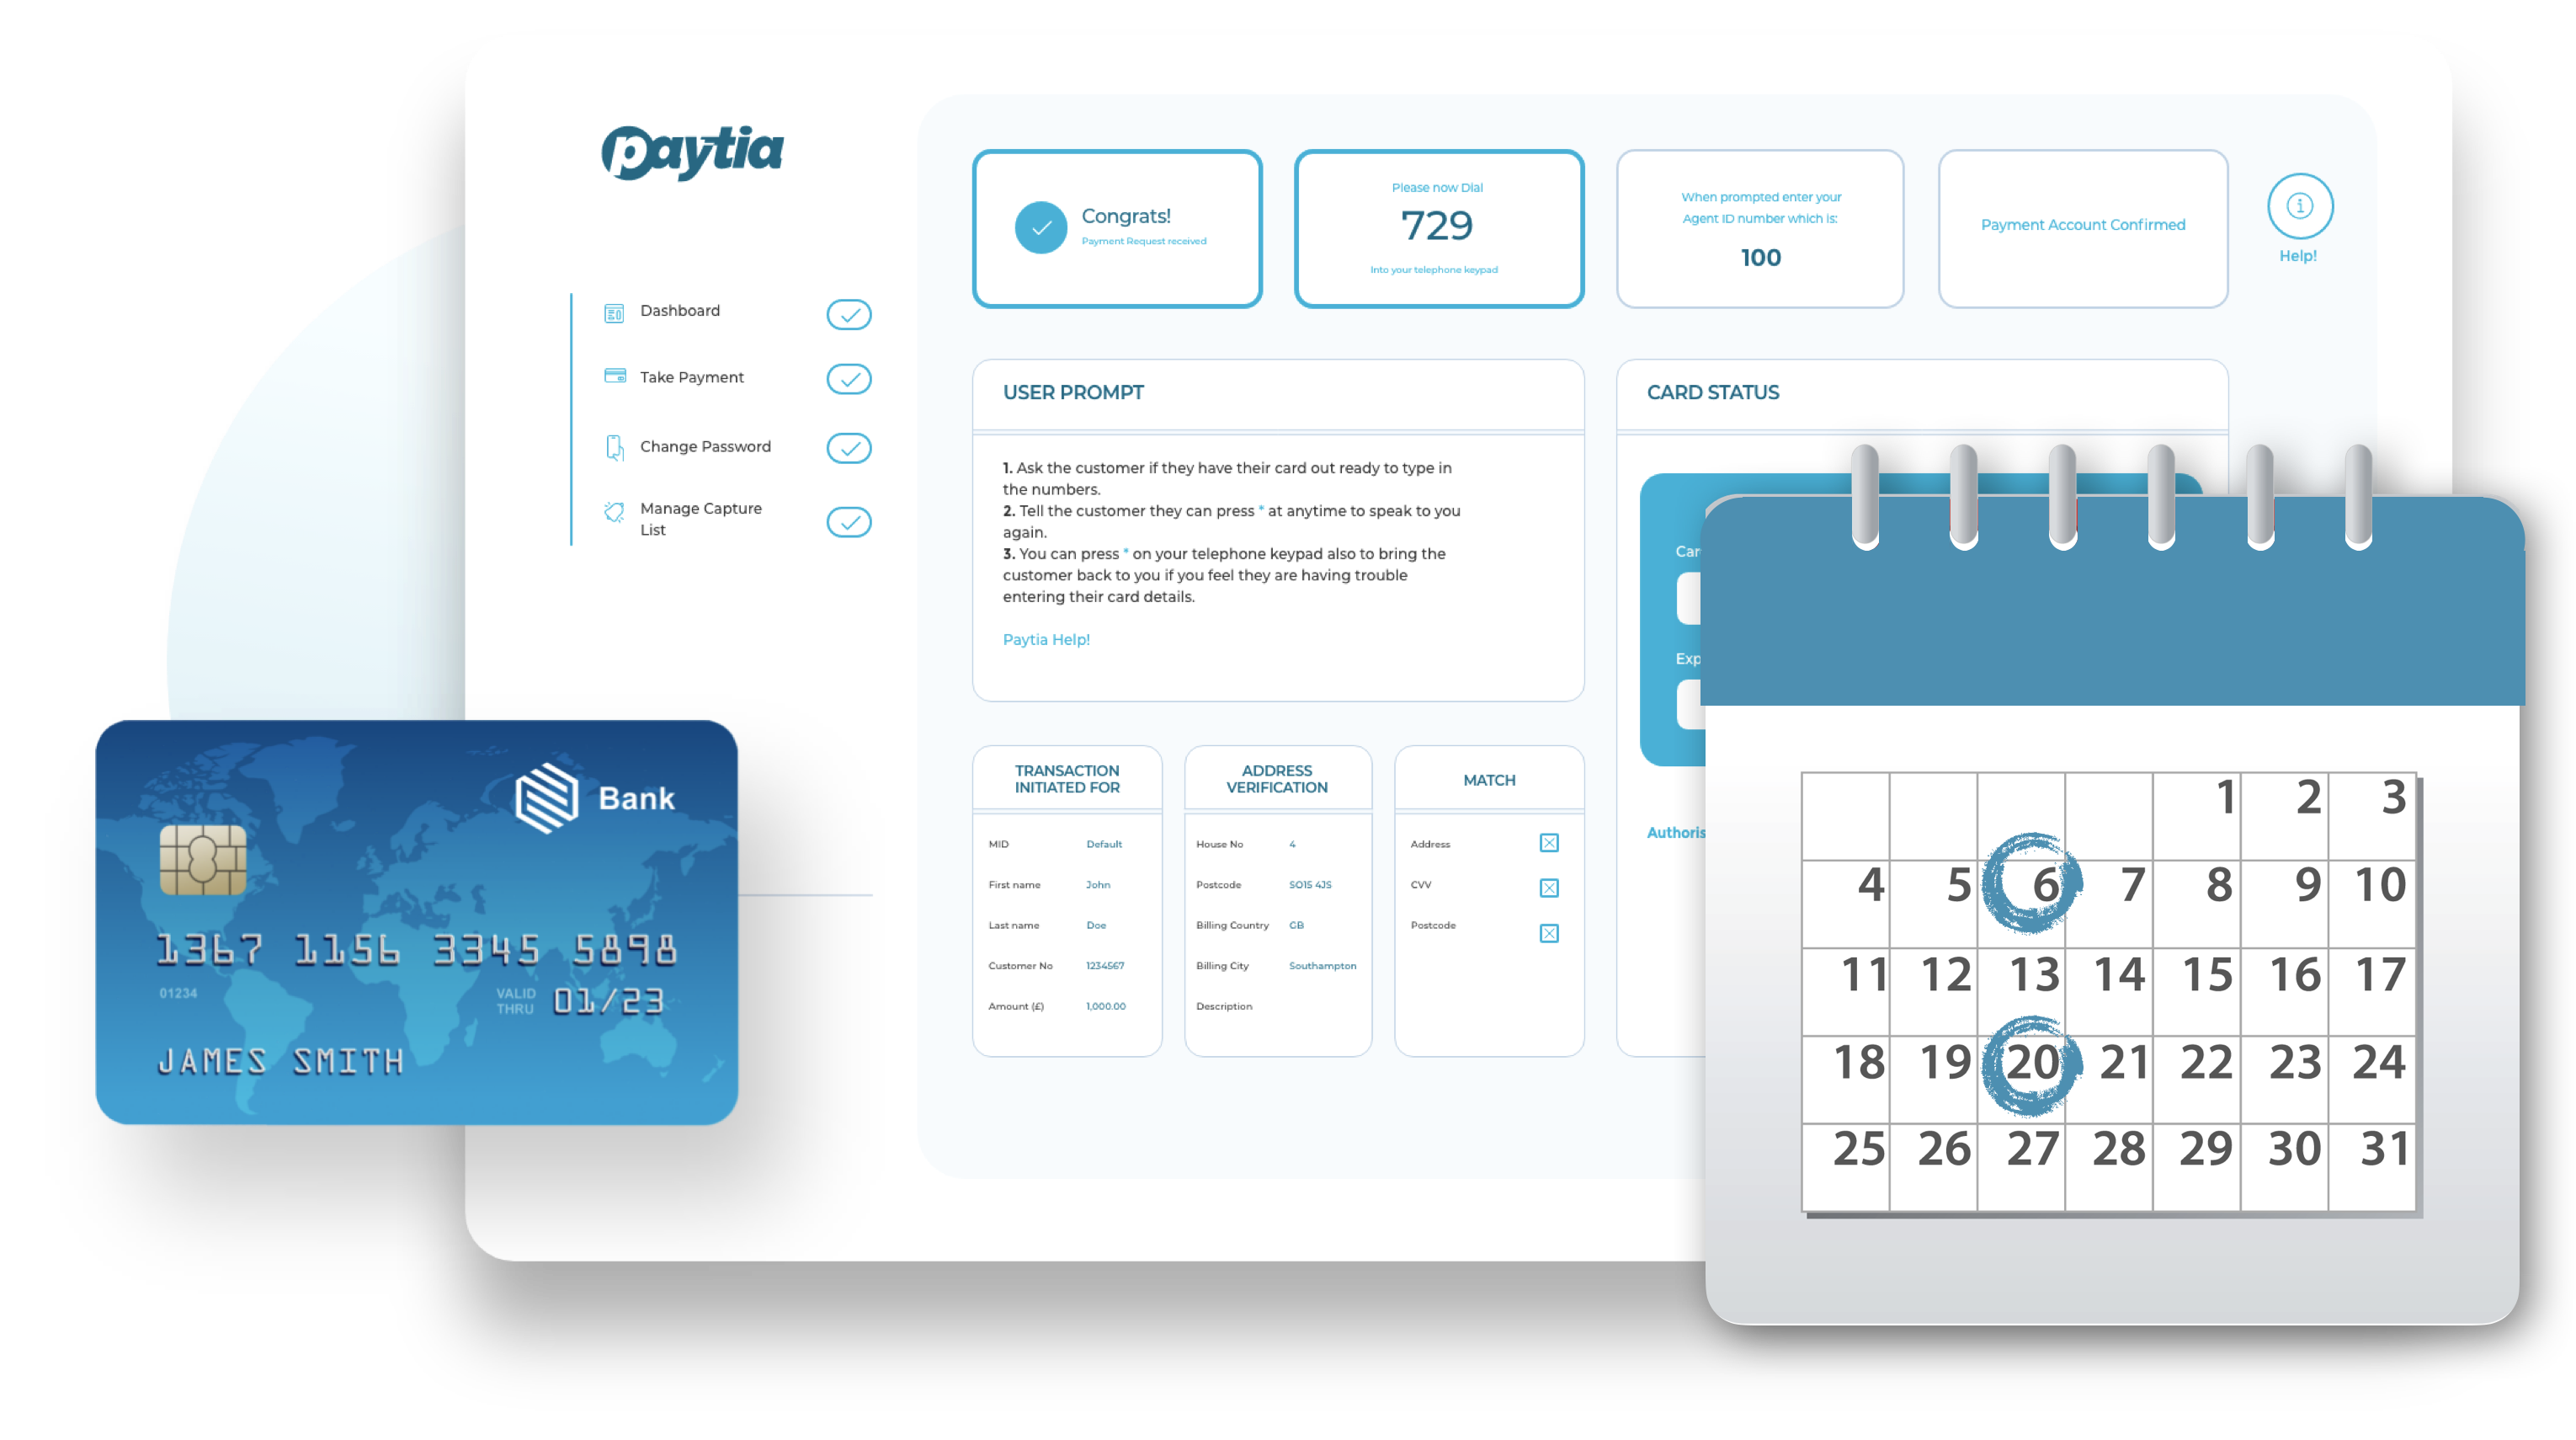 recurring secure payments by phone